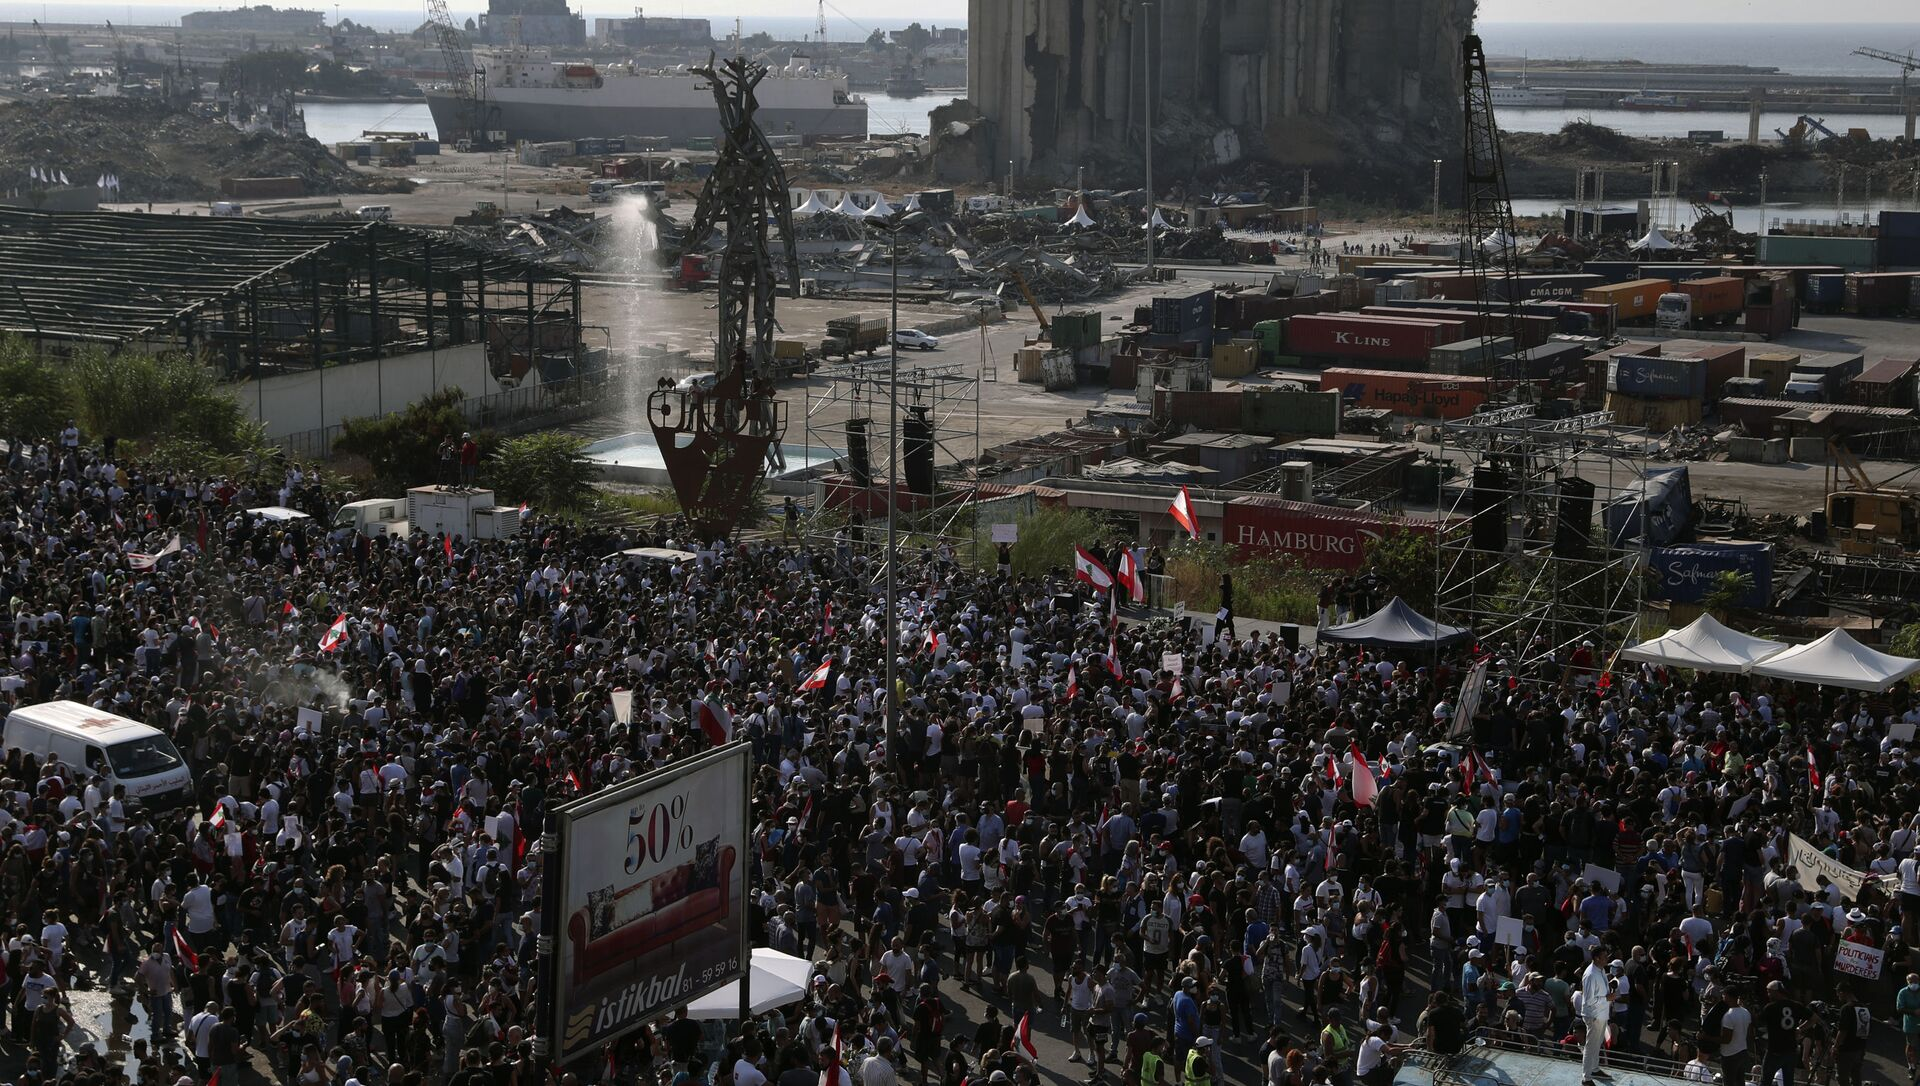 People gather outside the port to mark the first anniversary of the massive blast at Beirut's port, in Beirut, Lebanon, Wednesday, Aug. 4, 2021. - Sputnik International, 1920, 21.08.2021